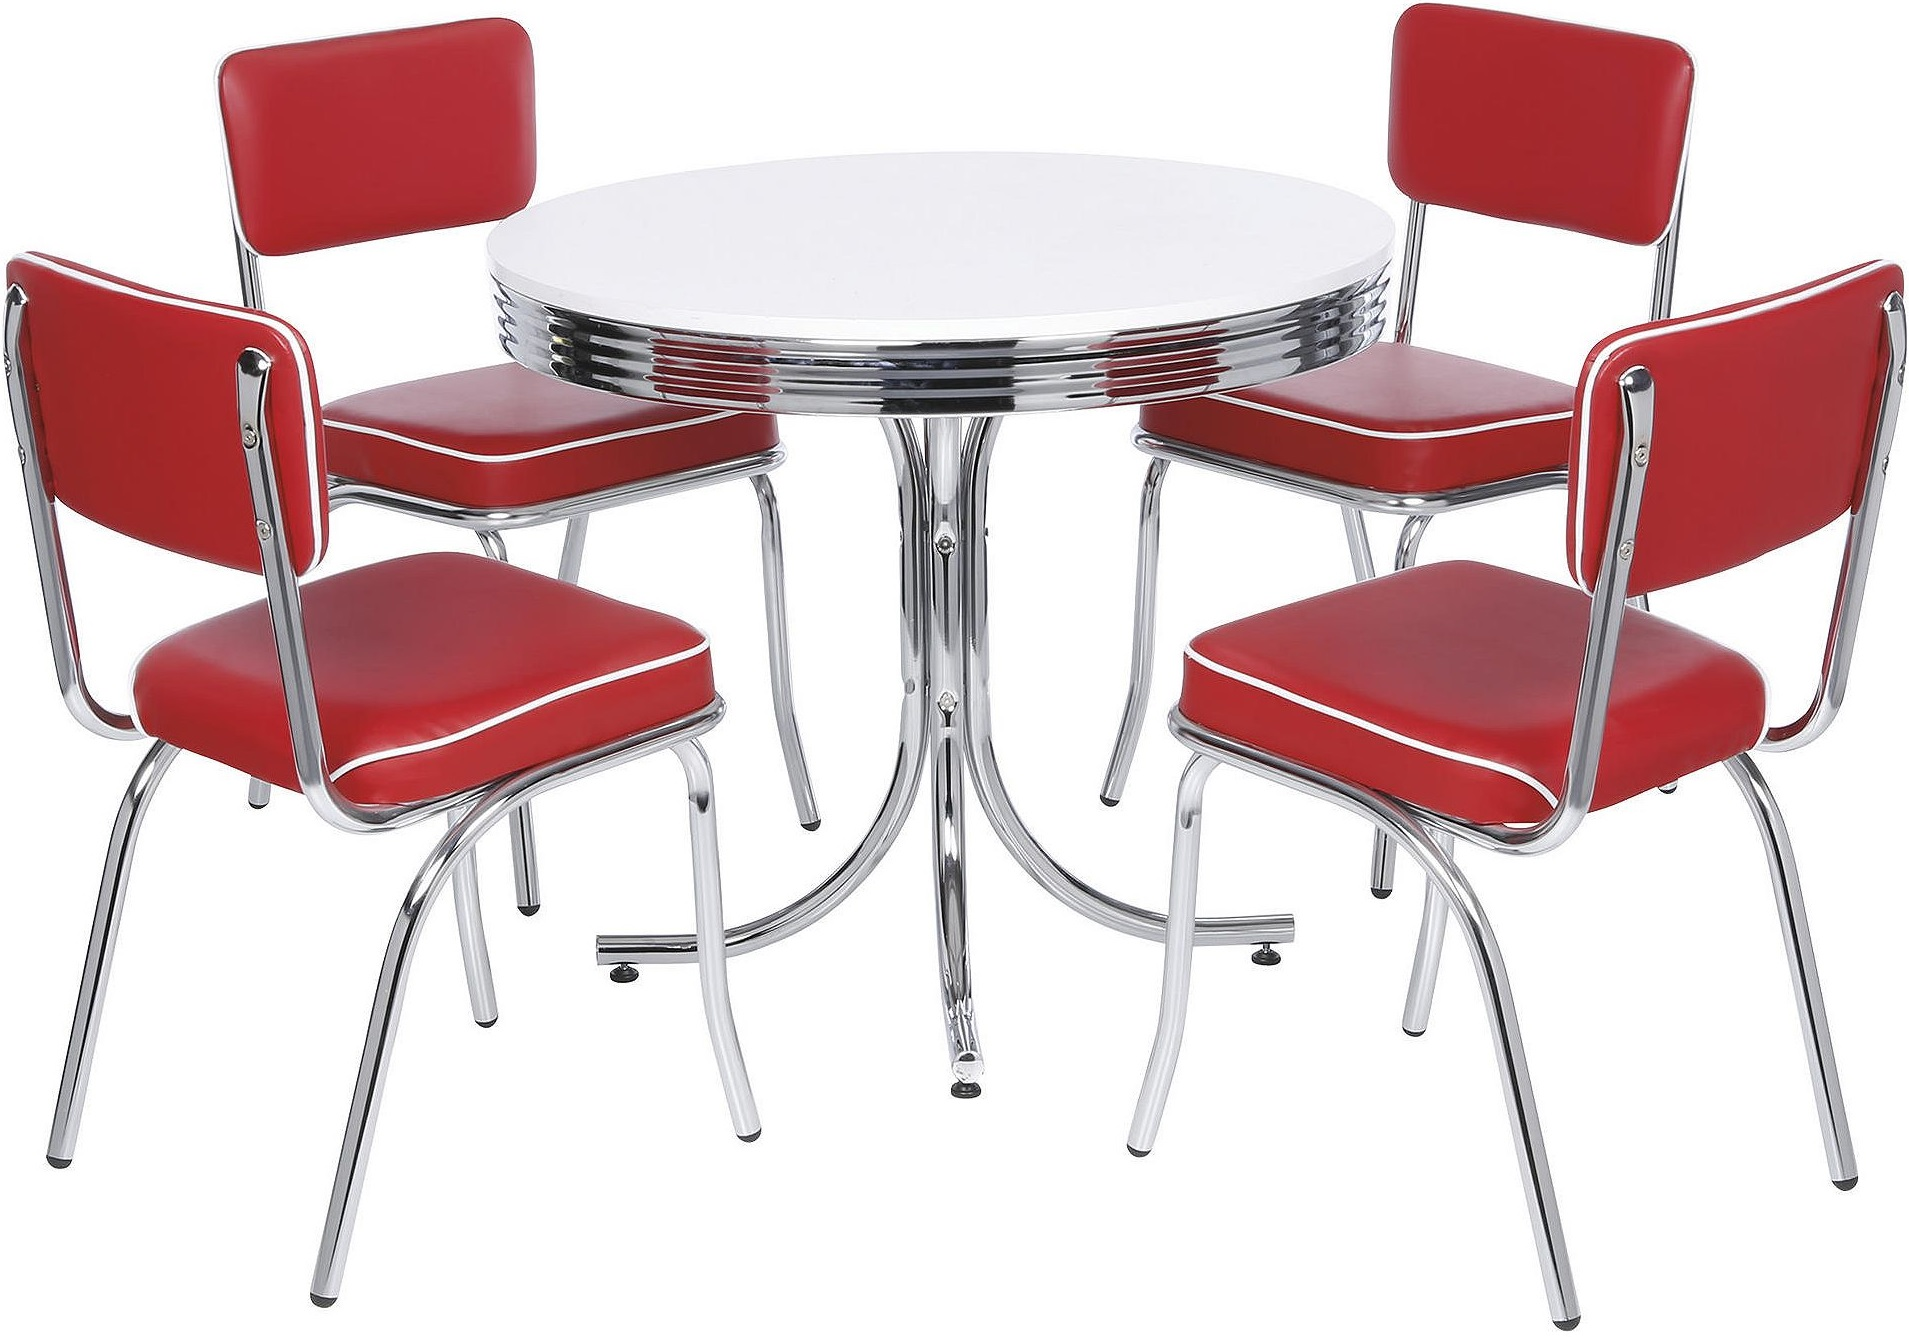 NEW Tesco Rydell American Diner Style Chrome Plated Table & 4